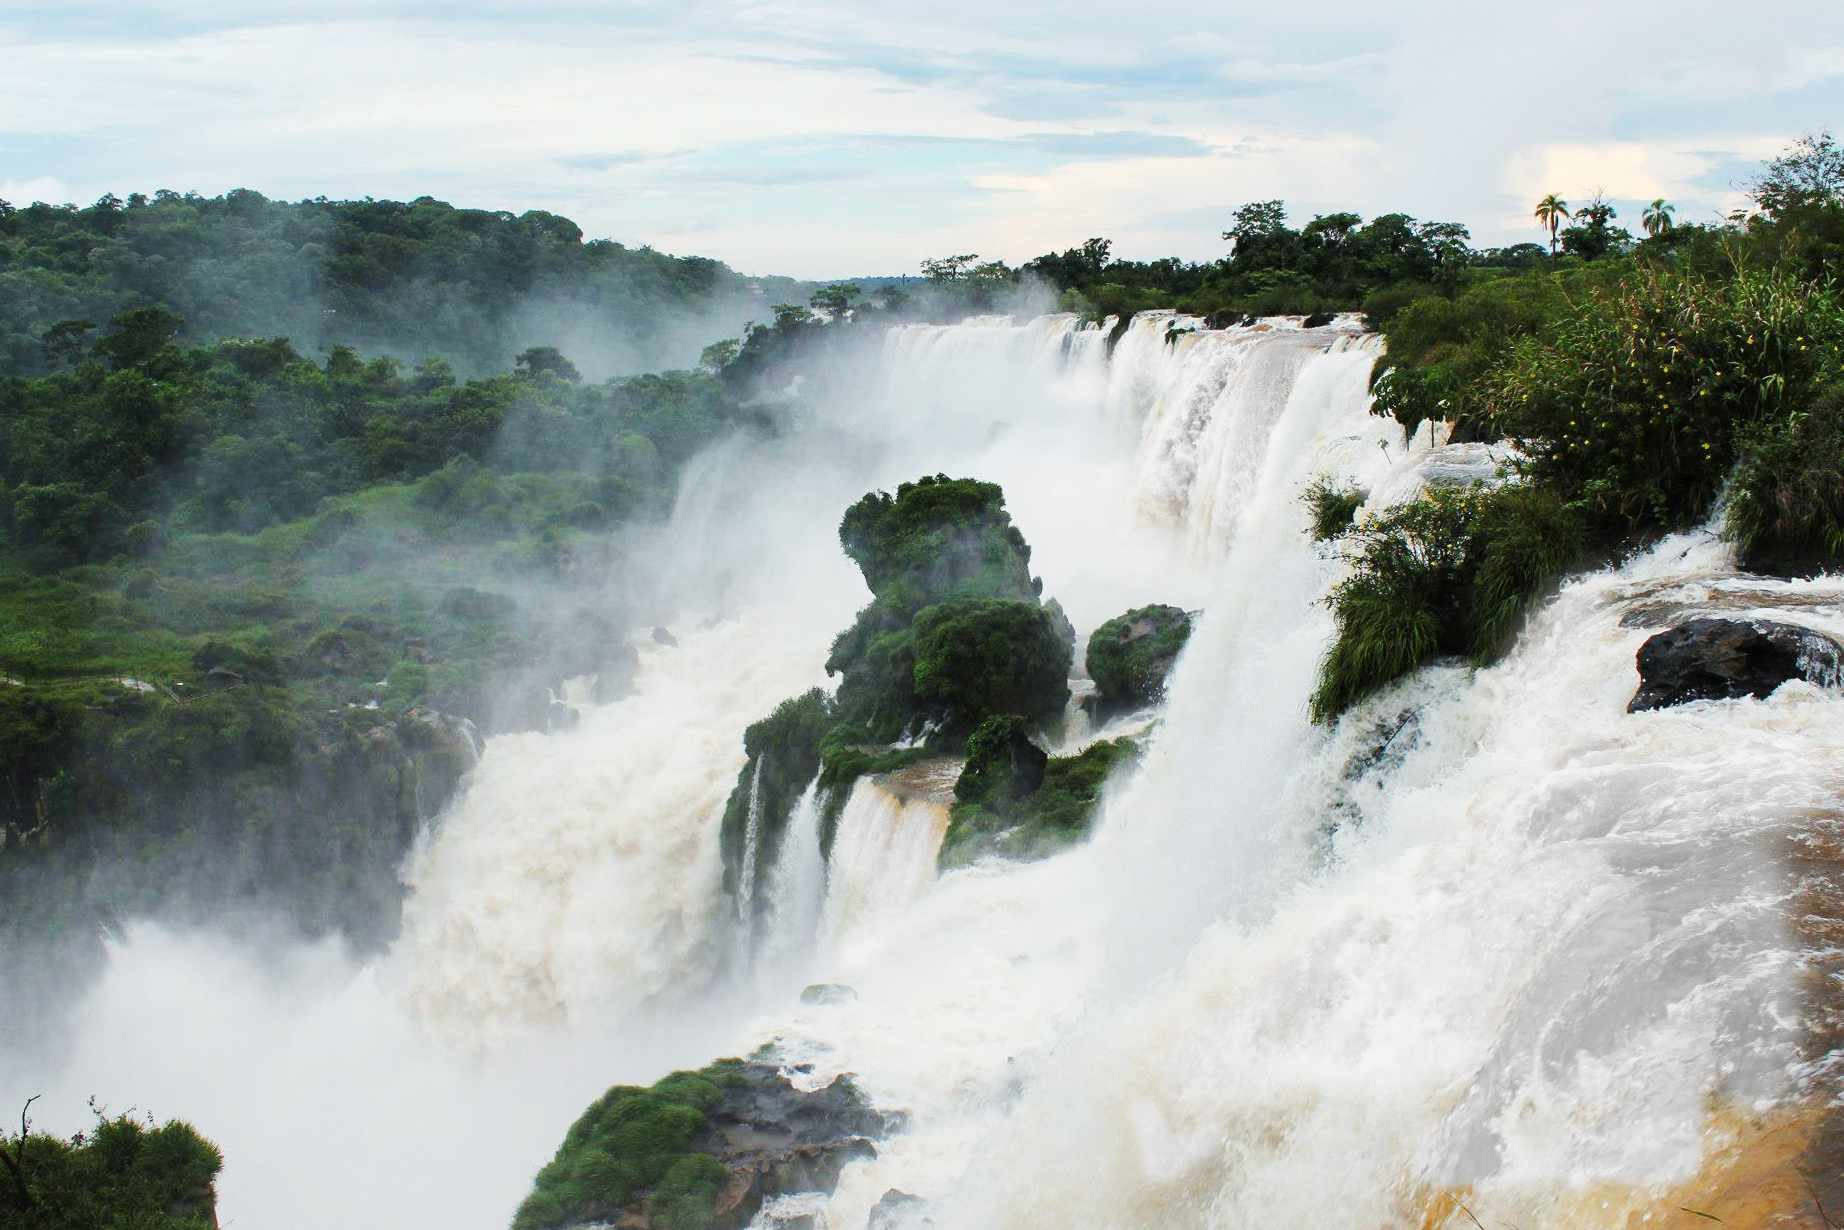 view of Igazu falls from the top